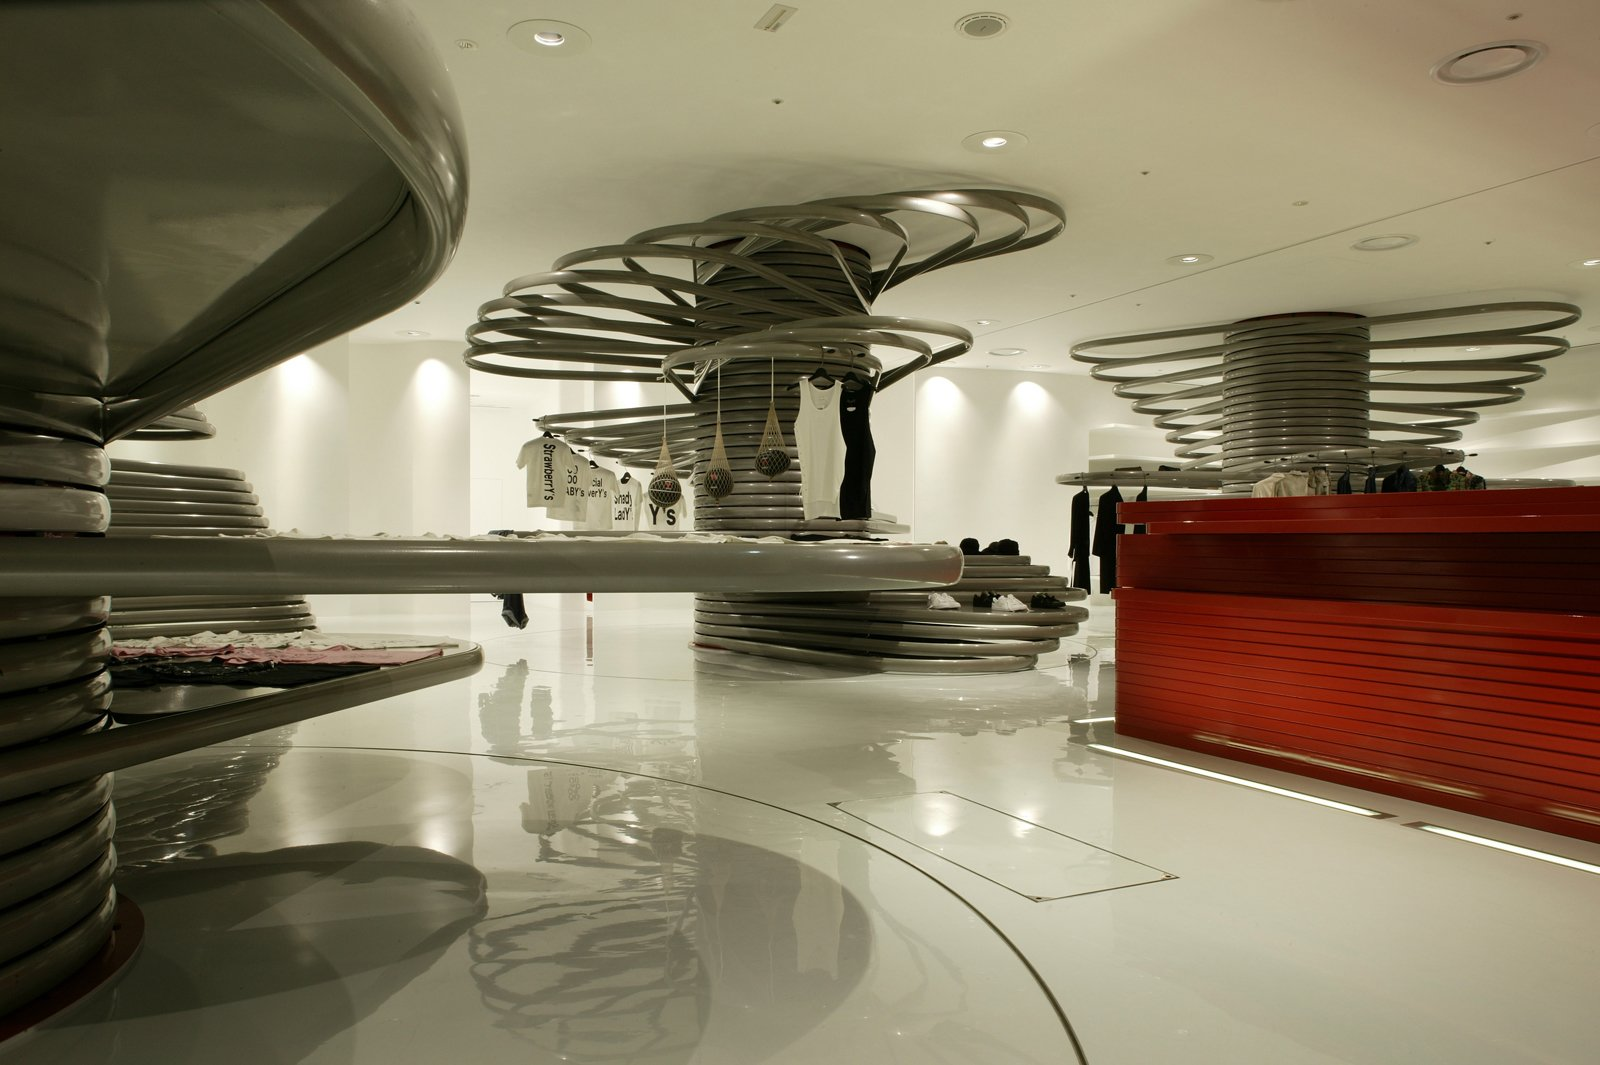 Y's Store (2003)Ron Arad Associates and the Museum of Modern Art  Photo 26 of 28 in Ron Arad: No Discipline Preview